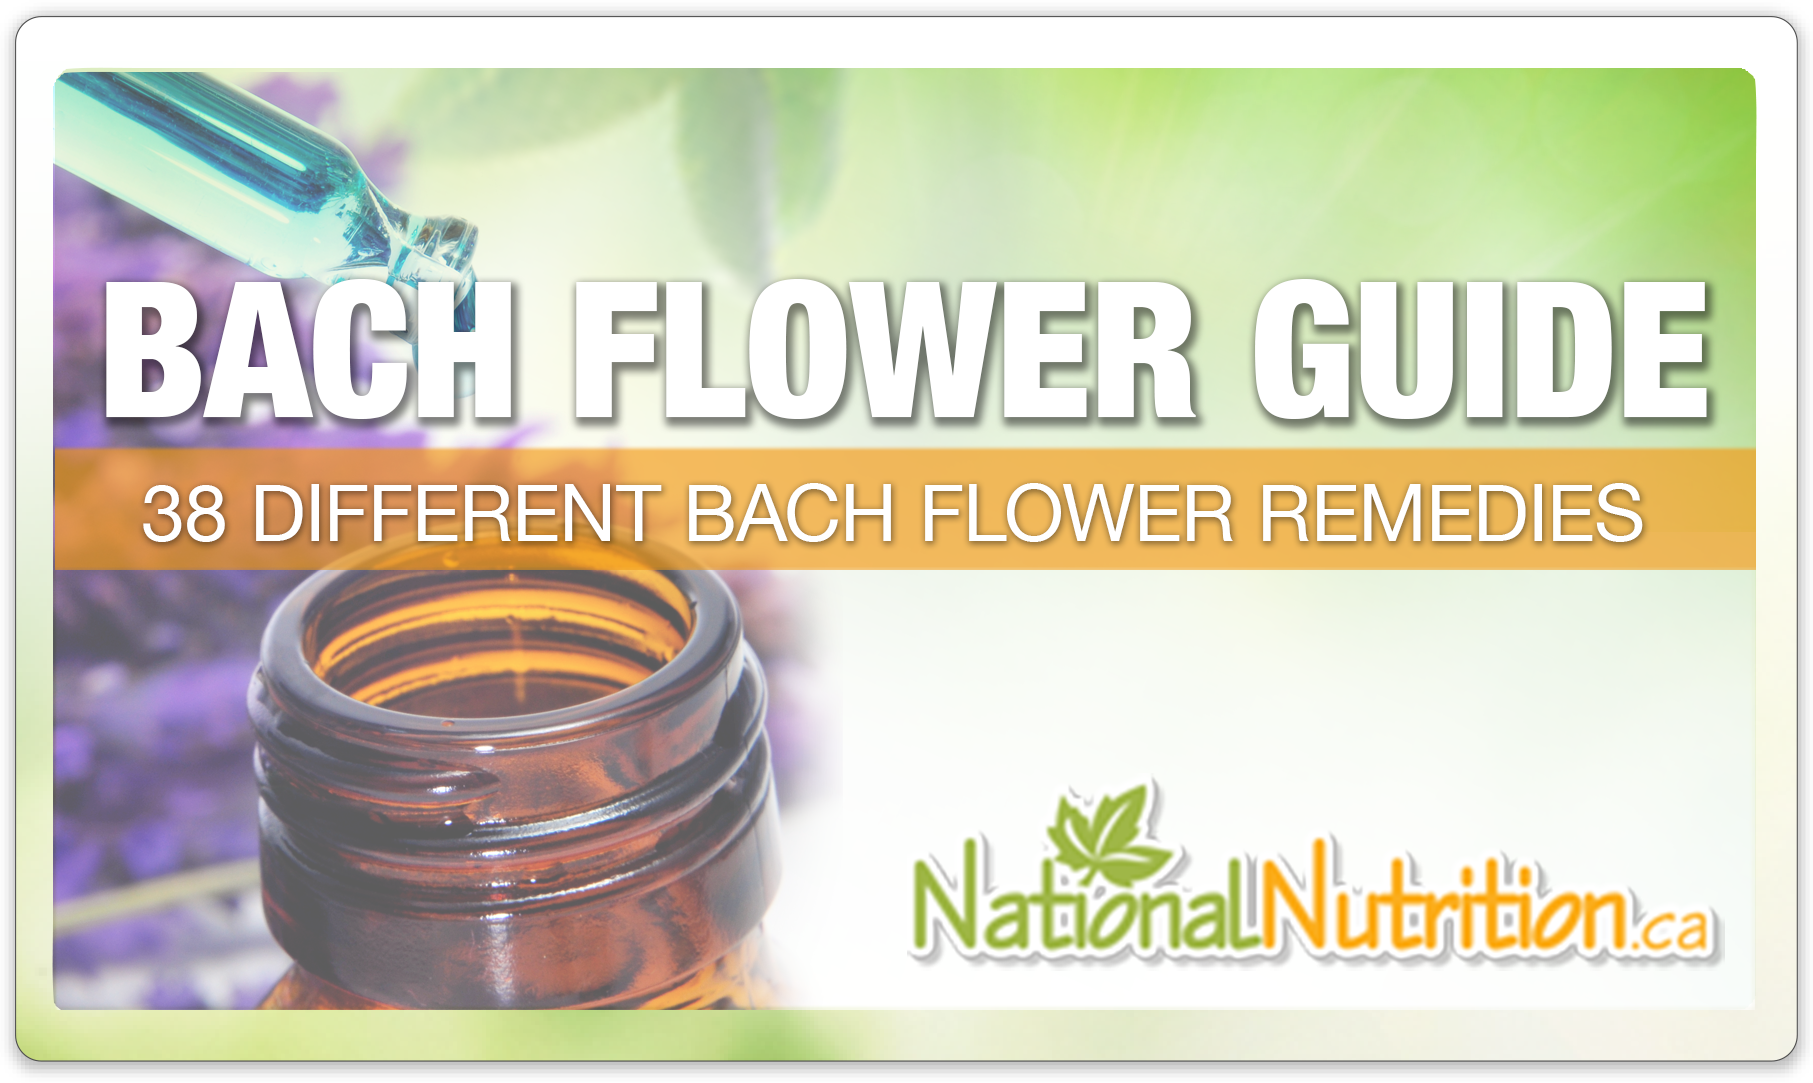 a Guide to Bach Flower Remedies - National Nutrition Articles